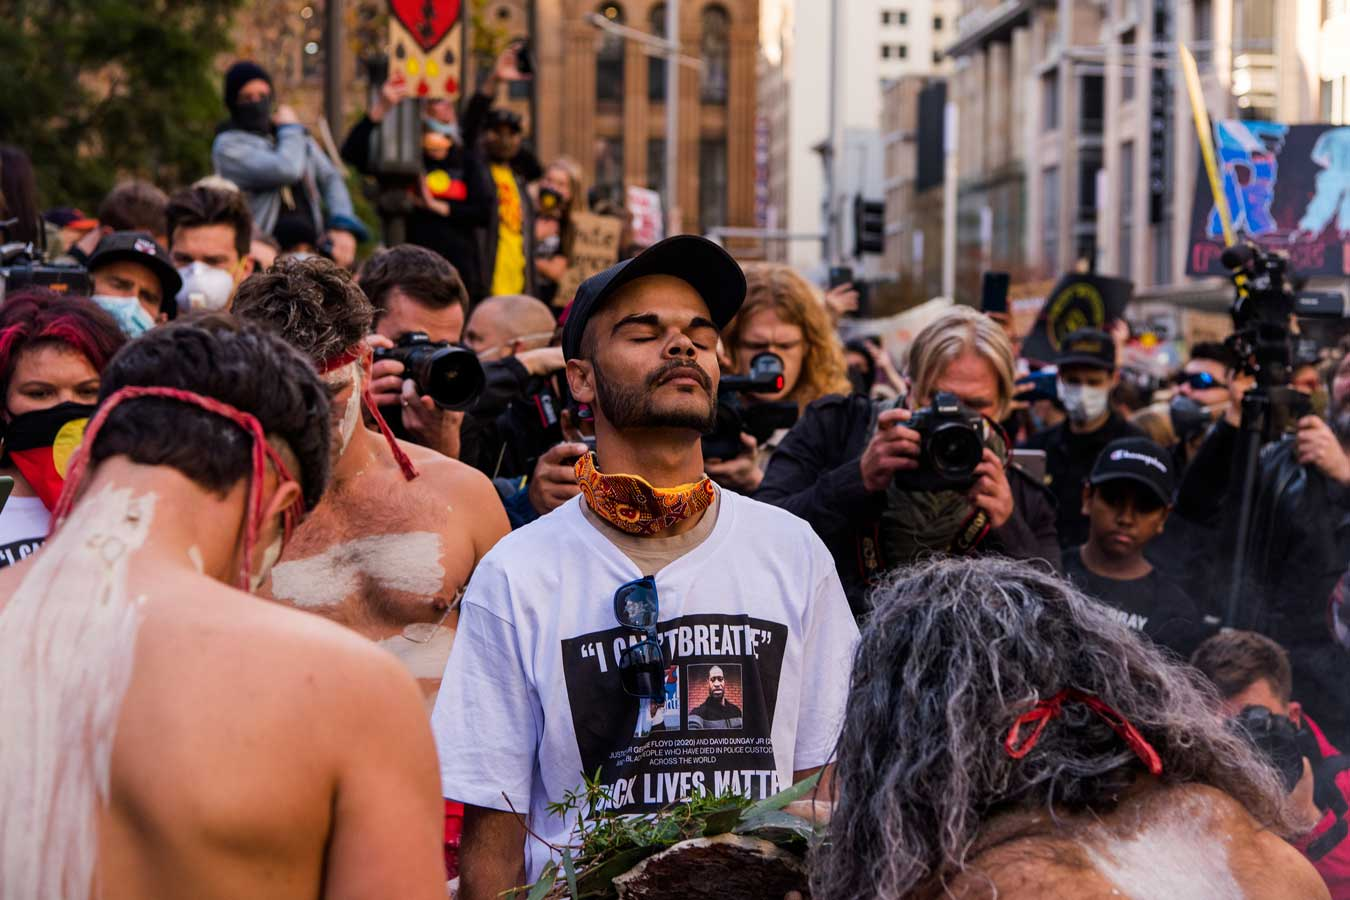 man-with-eyes-closed-back-turned-to-press-photographers-at-black-lives-matter-protest-sydney